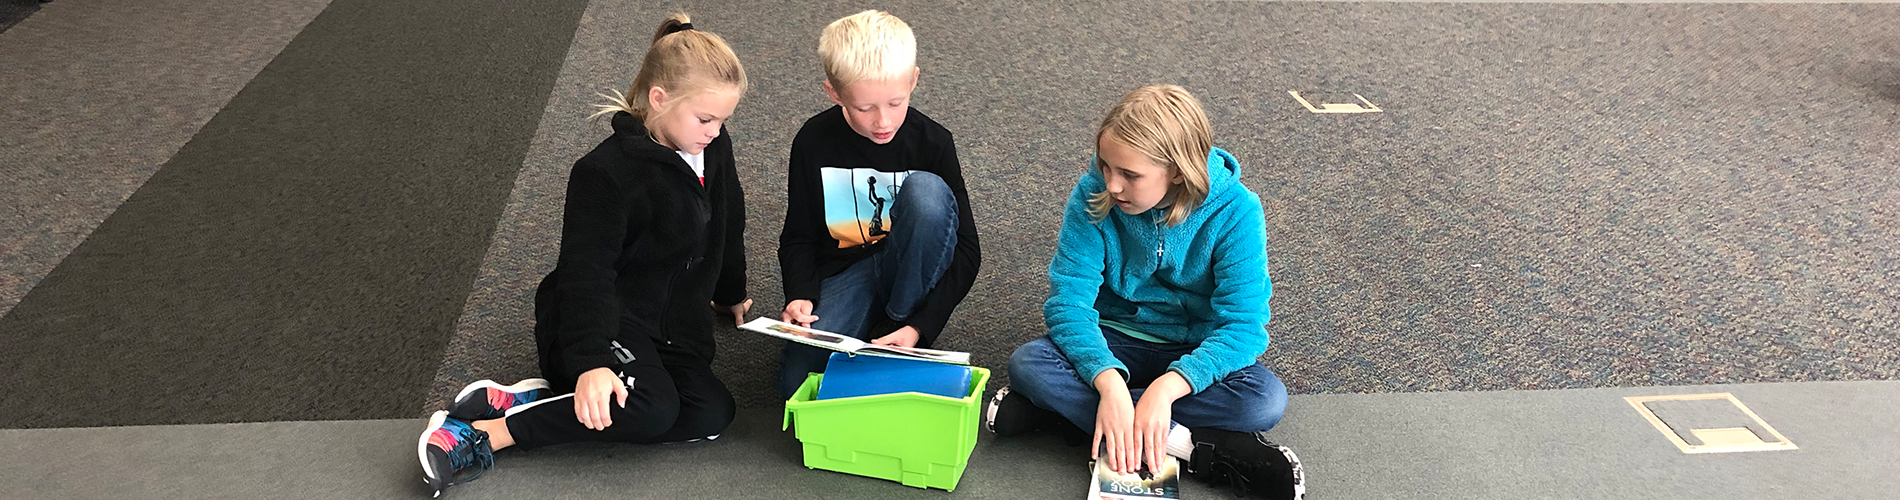 Elementary students read books to other students.